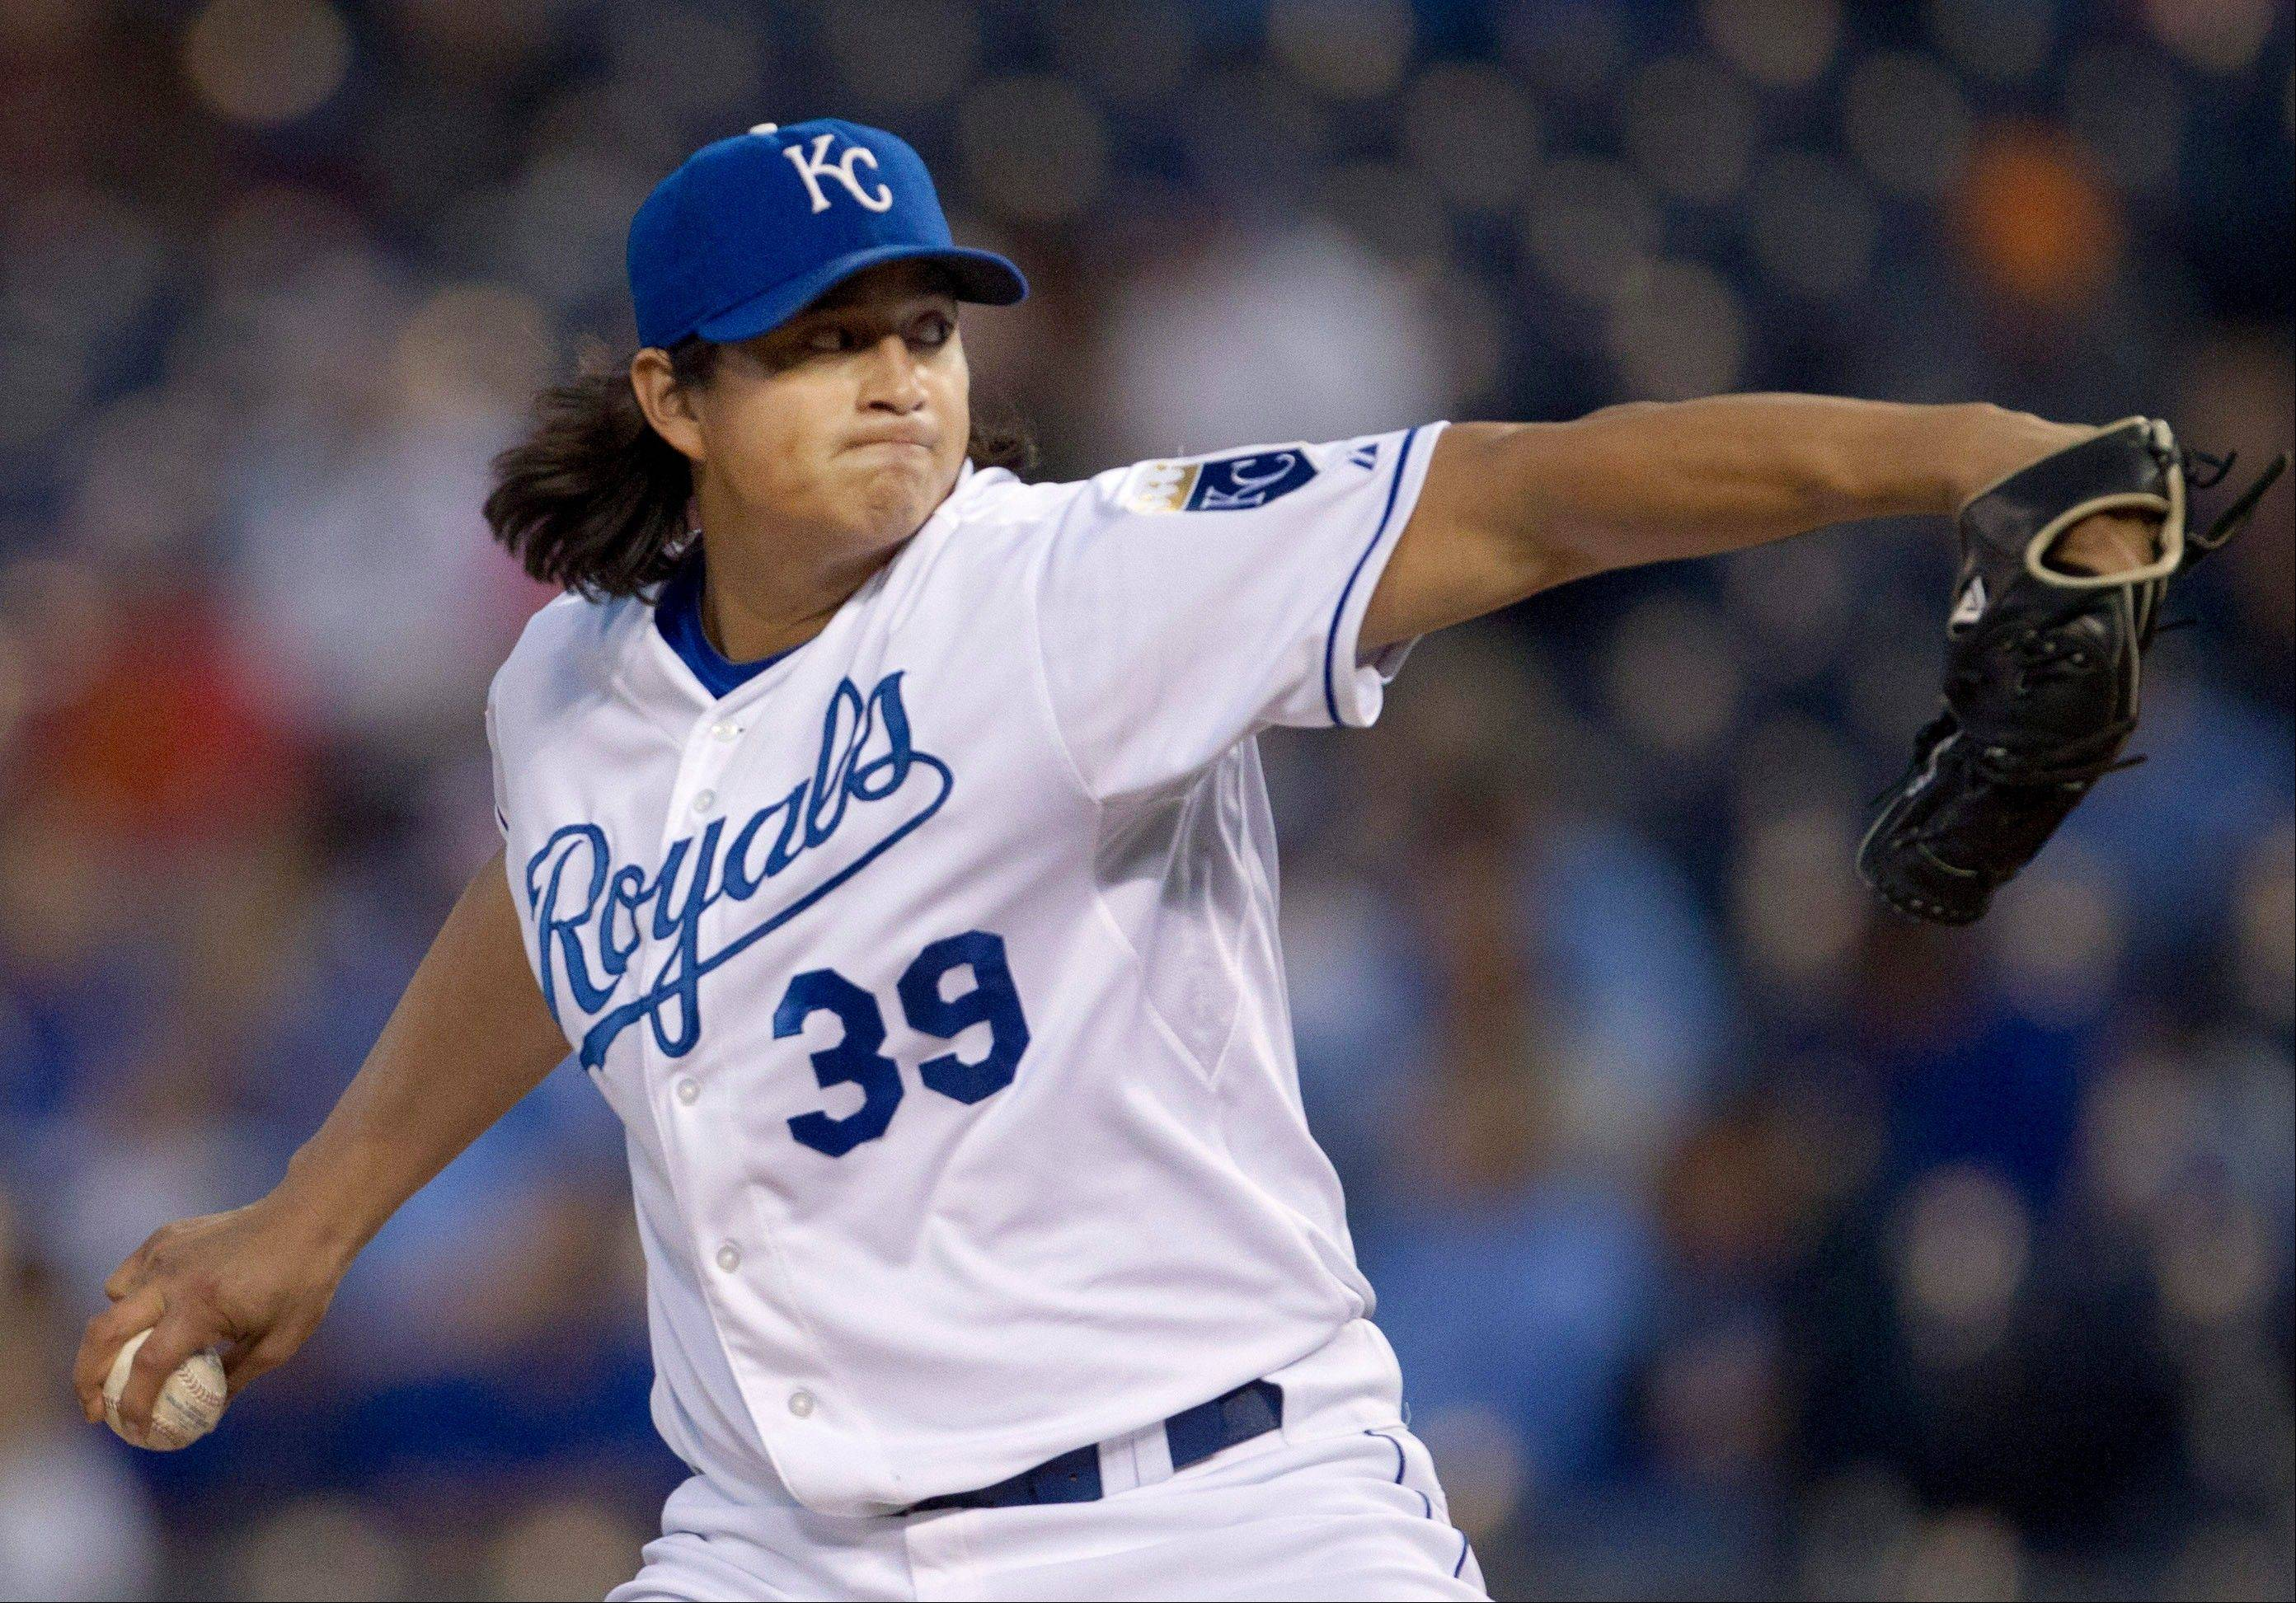 Kansas City starter Luis Mendoza allowed two runs and eight hits on Friday in a home win over Cleveland.